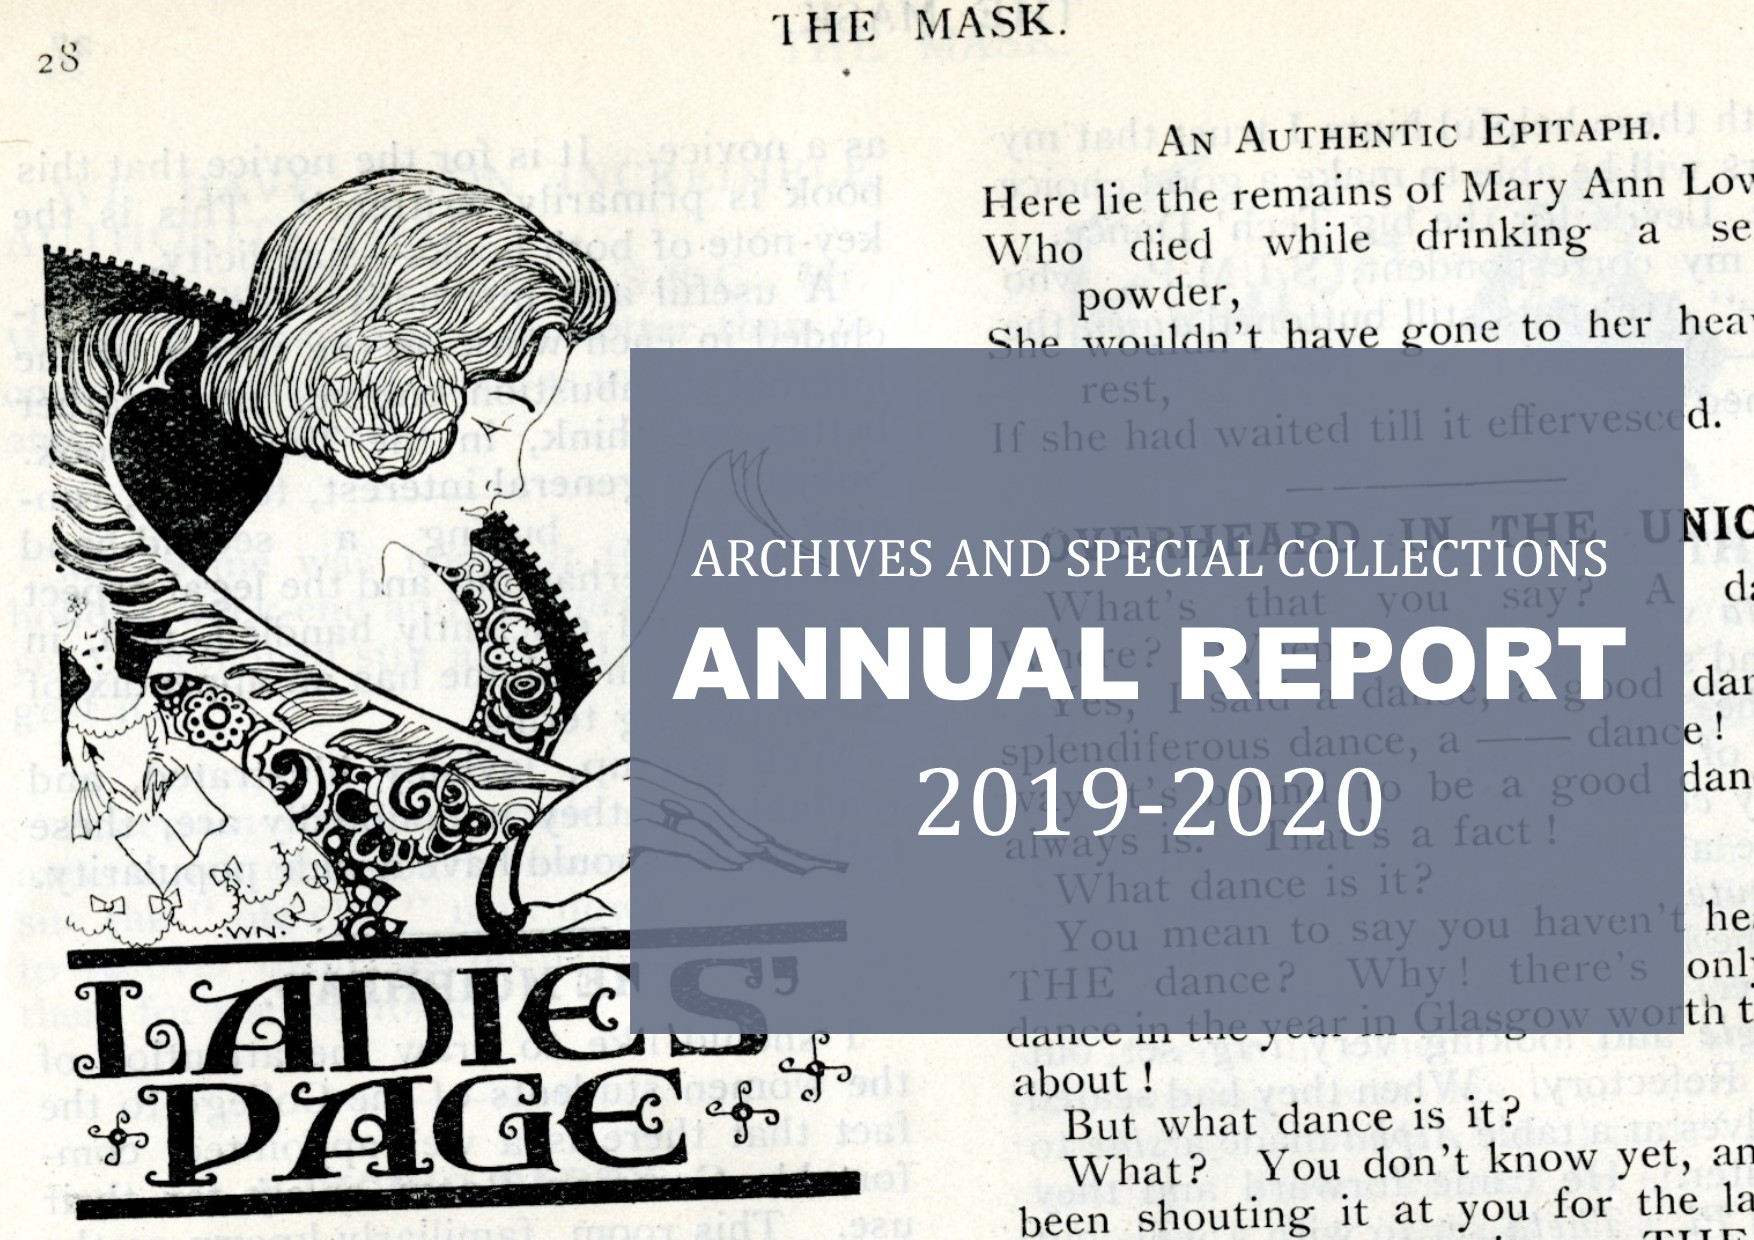 Archives and Special Collections annual report 2019-2020